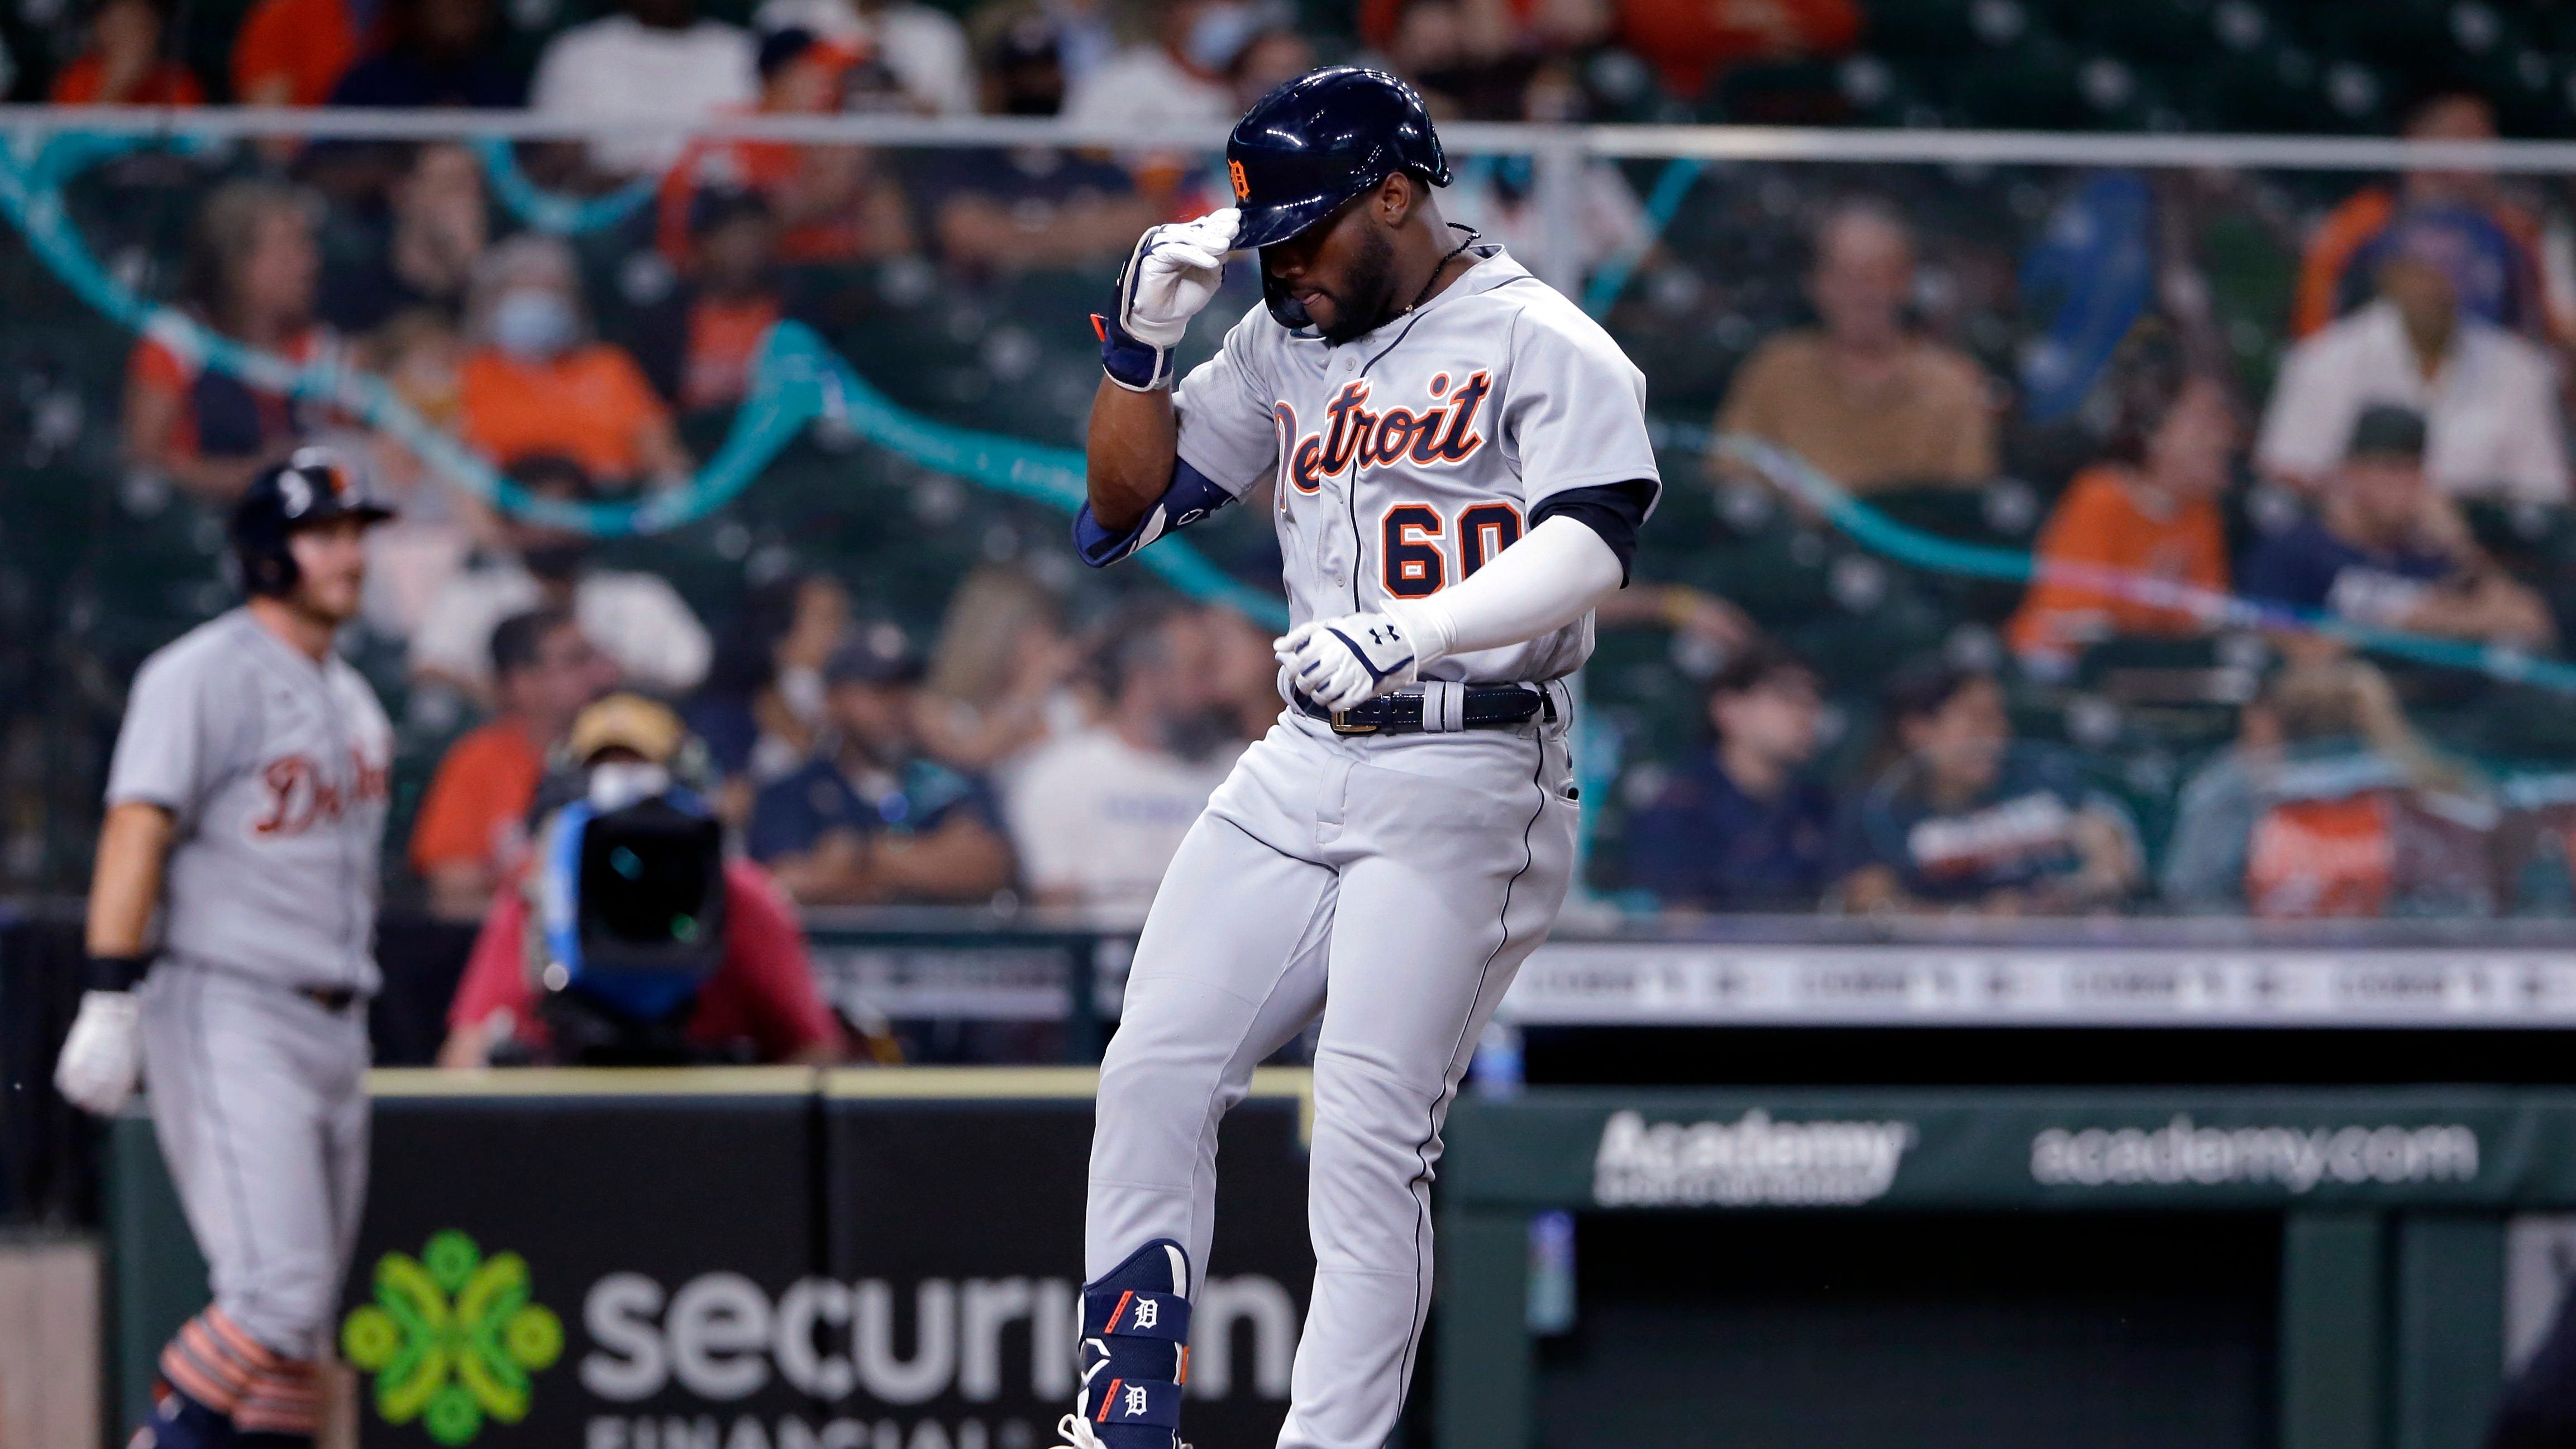 Detroit Tigers' Akil Baddoo (60) jumps onto home plate as he scores on his home run during the third inning of the team's baseball game against the Houston Astros Tuesday, April 13, 2021, in Houston.